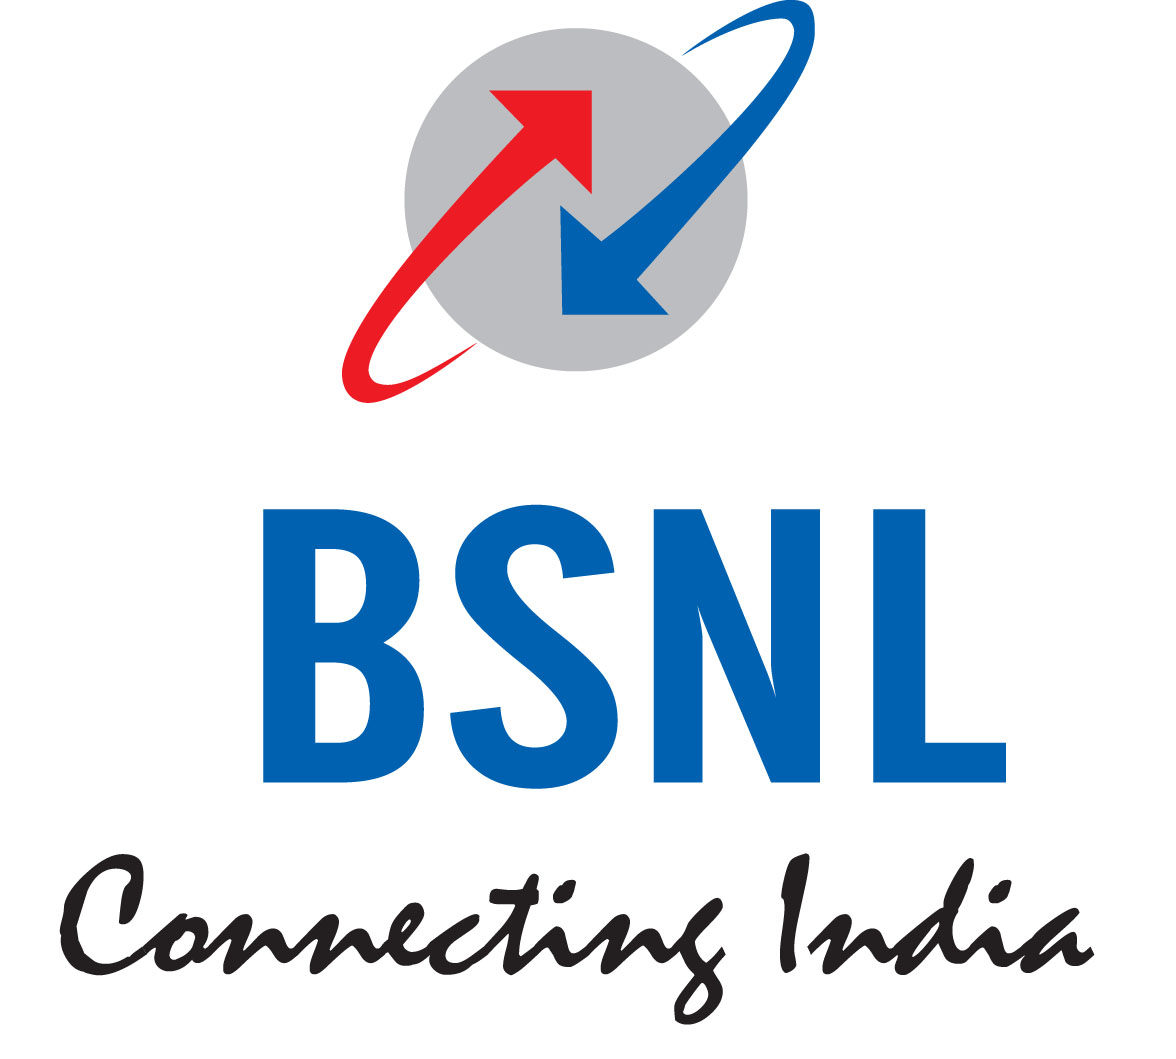 bharat sancharnigam ltd Unlimited calls local/std bsnl to bsnl + 30 minutes/day bsnl to others voice calls local bharat sanchar nigam ltd was incorporated on 15th bharat sanchar.